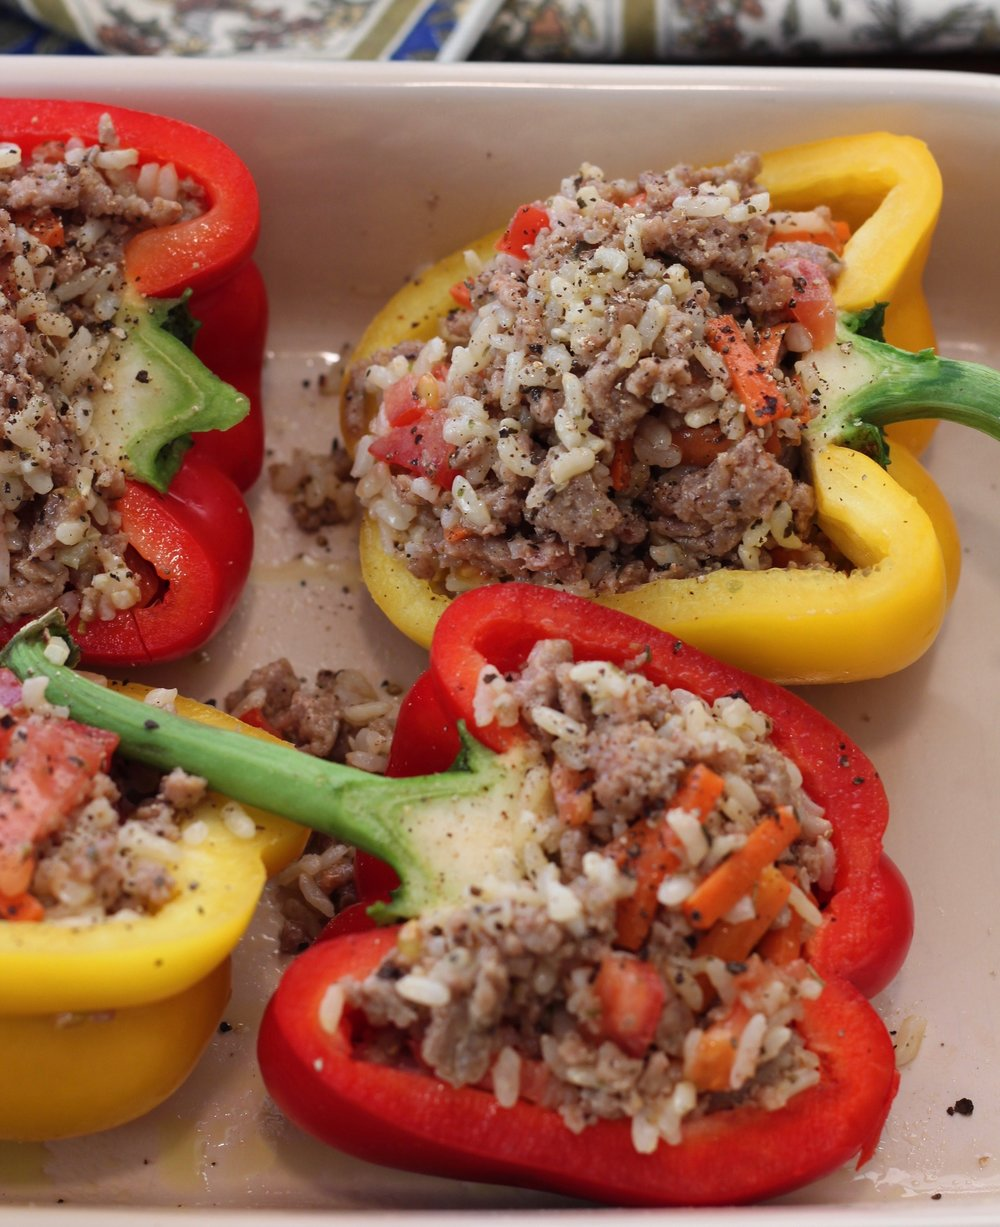 Stuffed peppers ready for the oven.